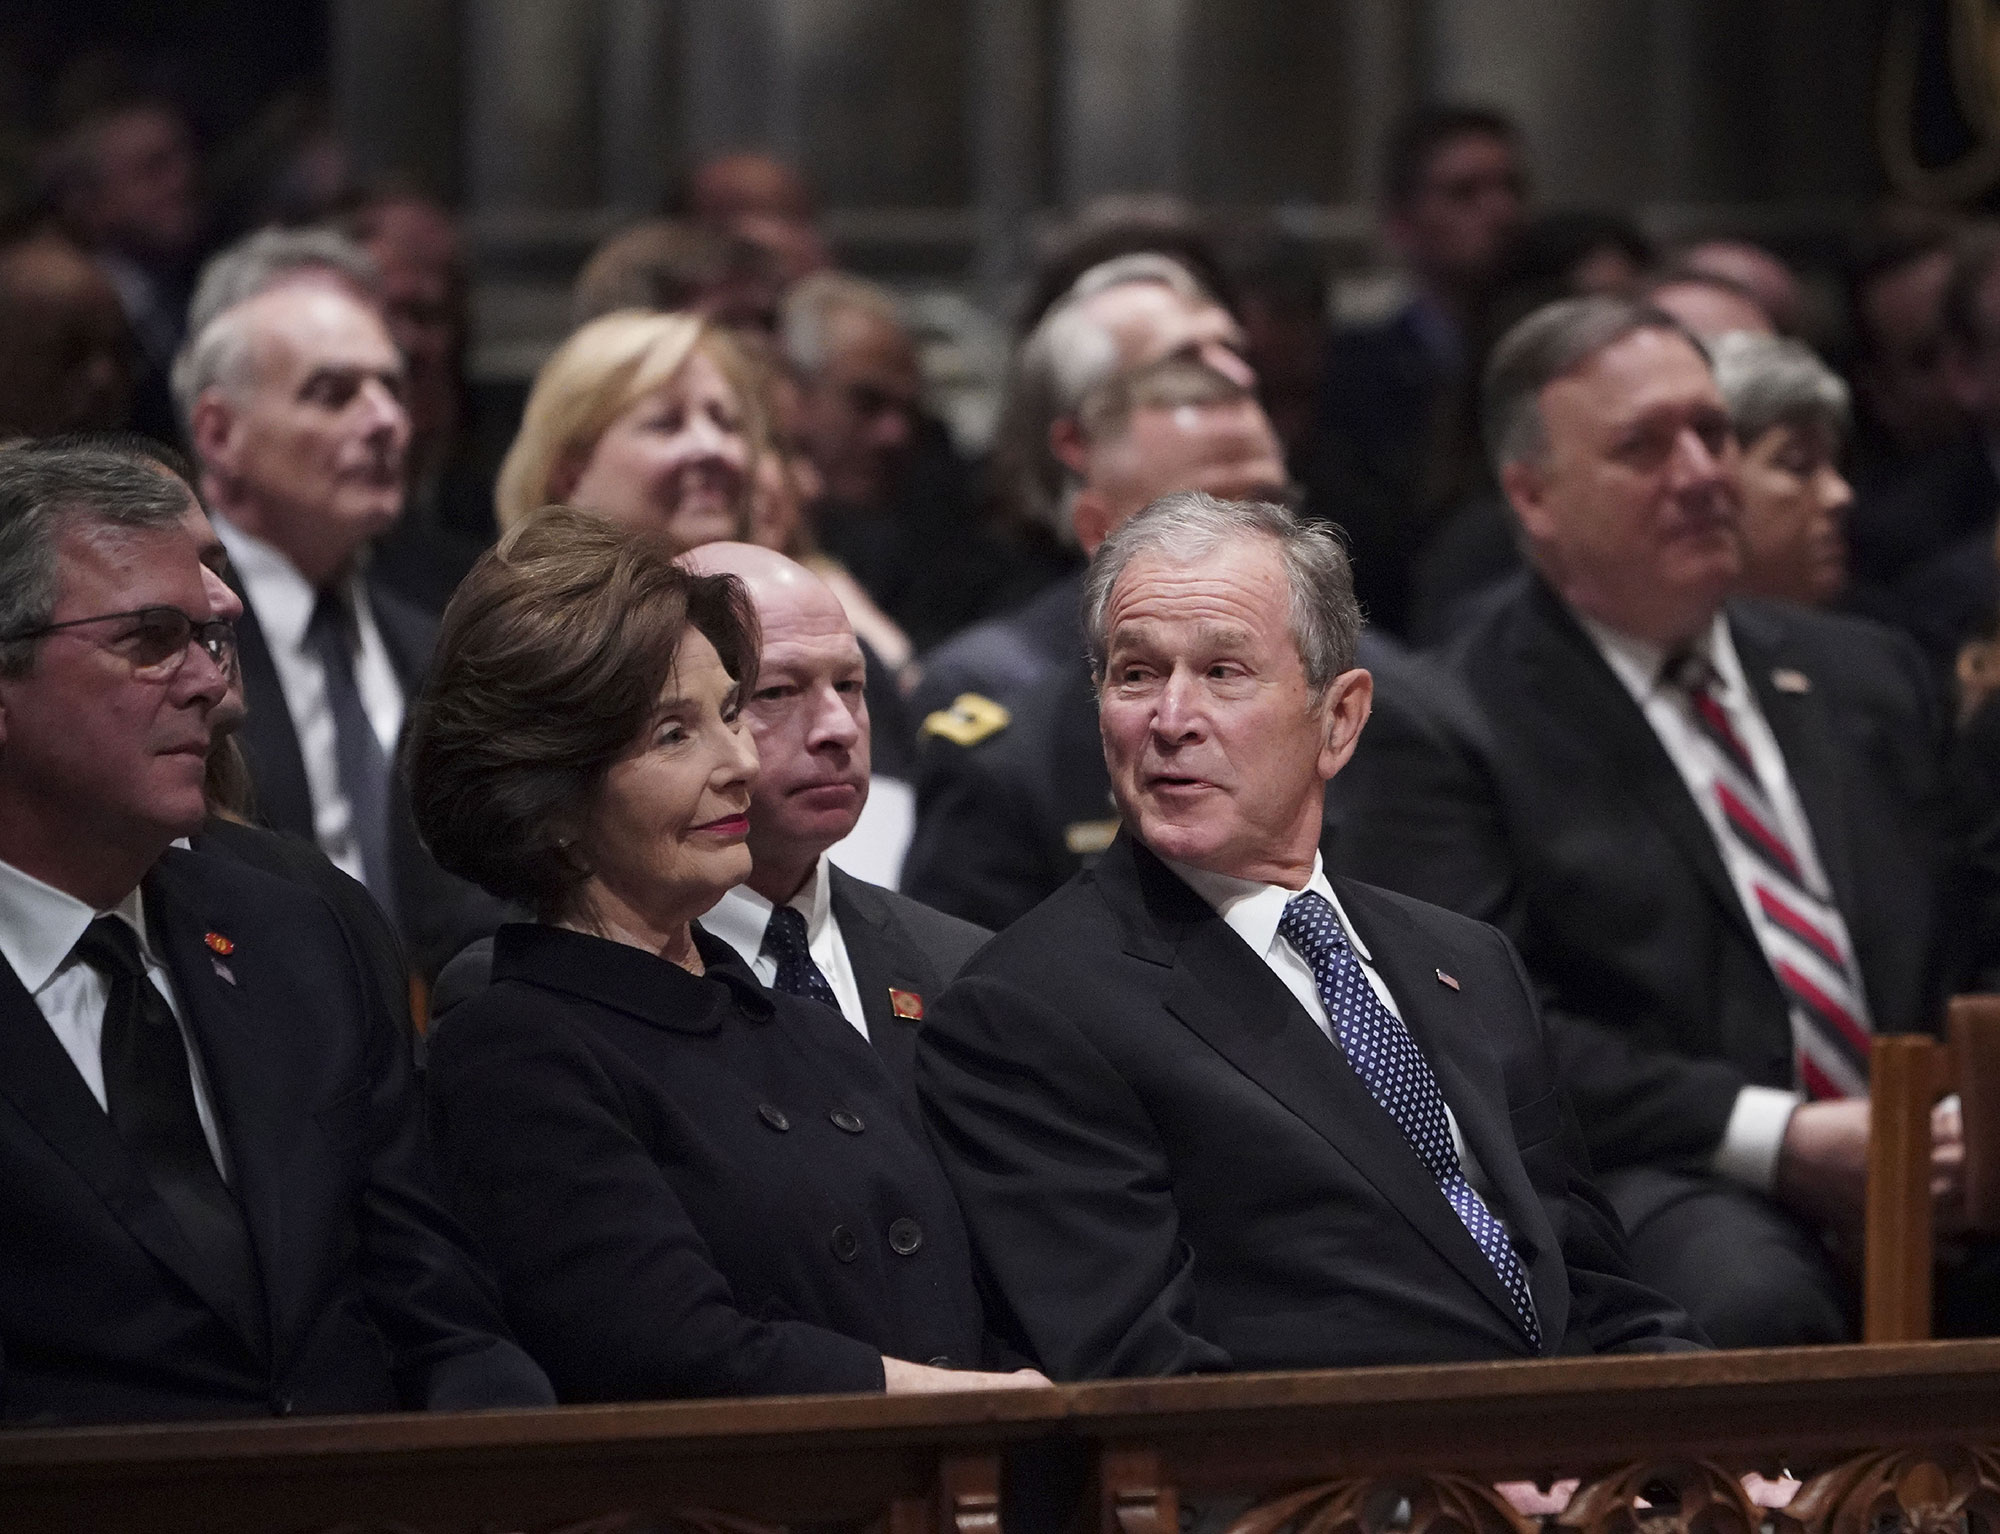 """george bush funeral - The 41st president's son, George W., arrived at the funeral with his wife, Laura. """"George H.W. Bush was a man of the highest character and the best dad a son or daughter could ask for,"""" a statement released by George W. after his father's death read."""